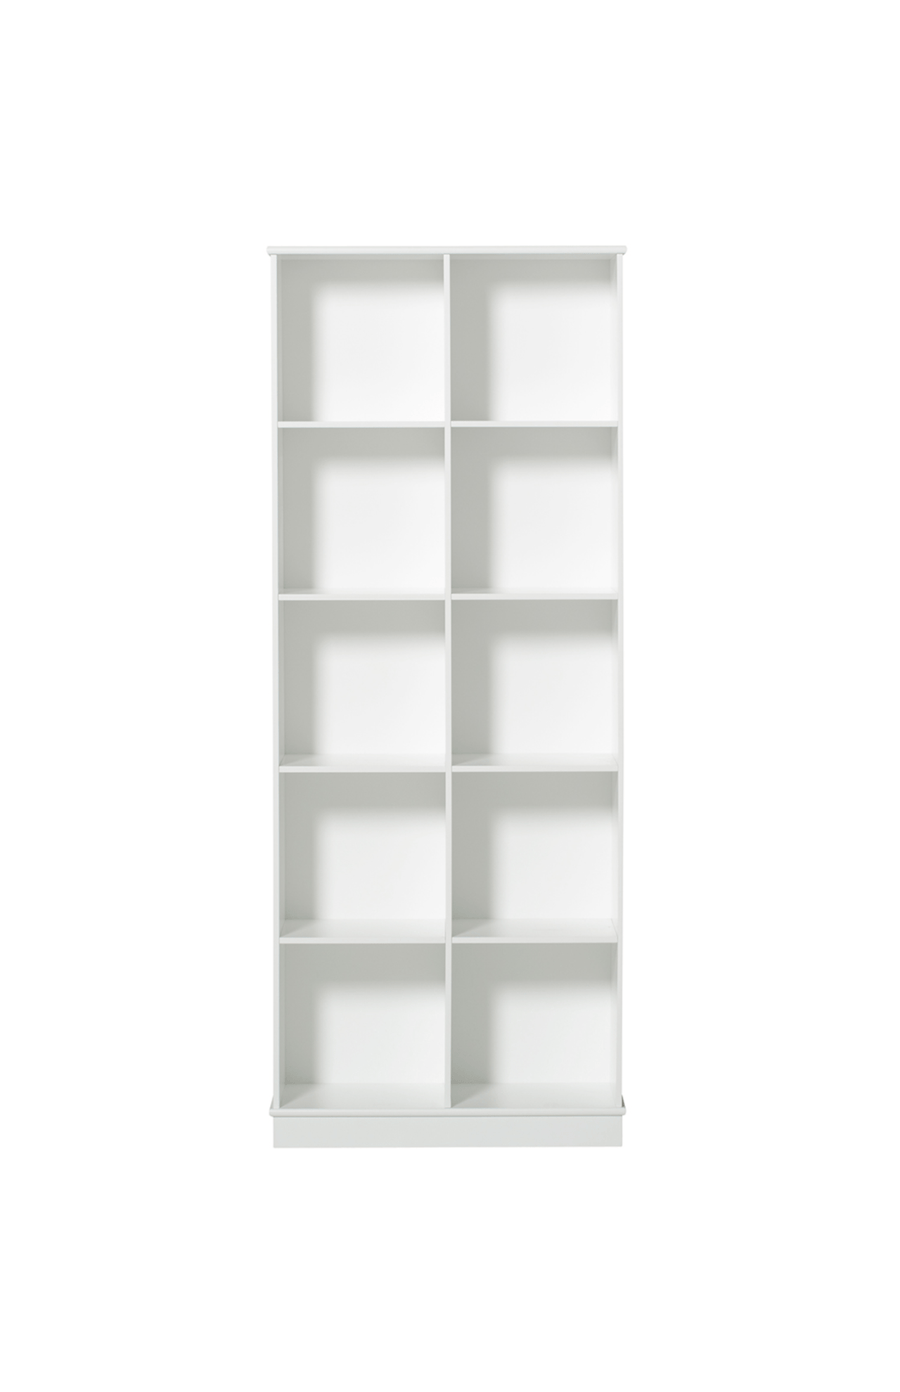 Oliver Furniture Floor Standing Shelving Unit - 2 x 5 Vertical